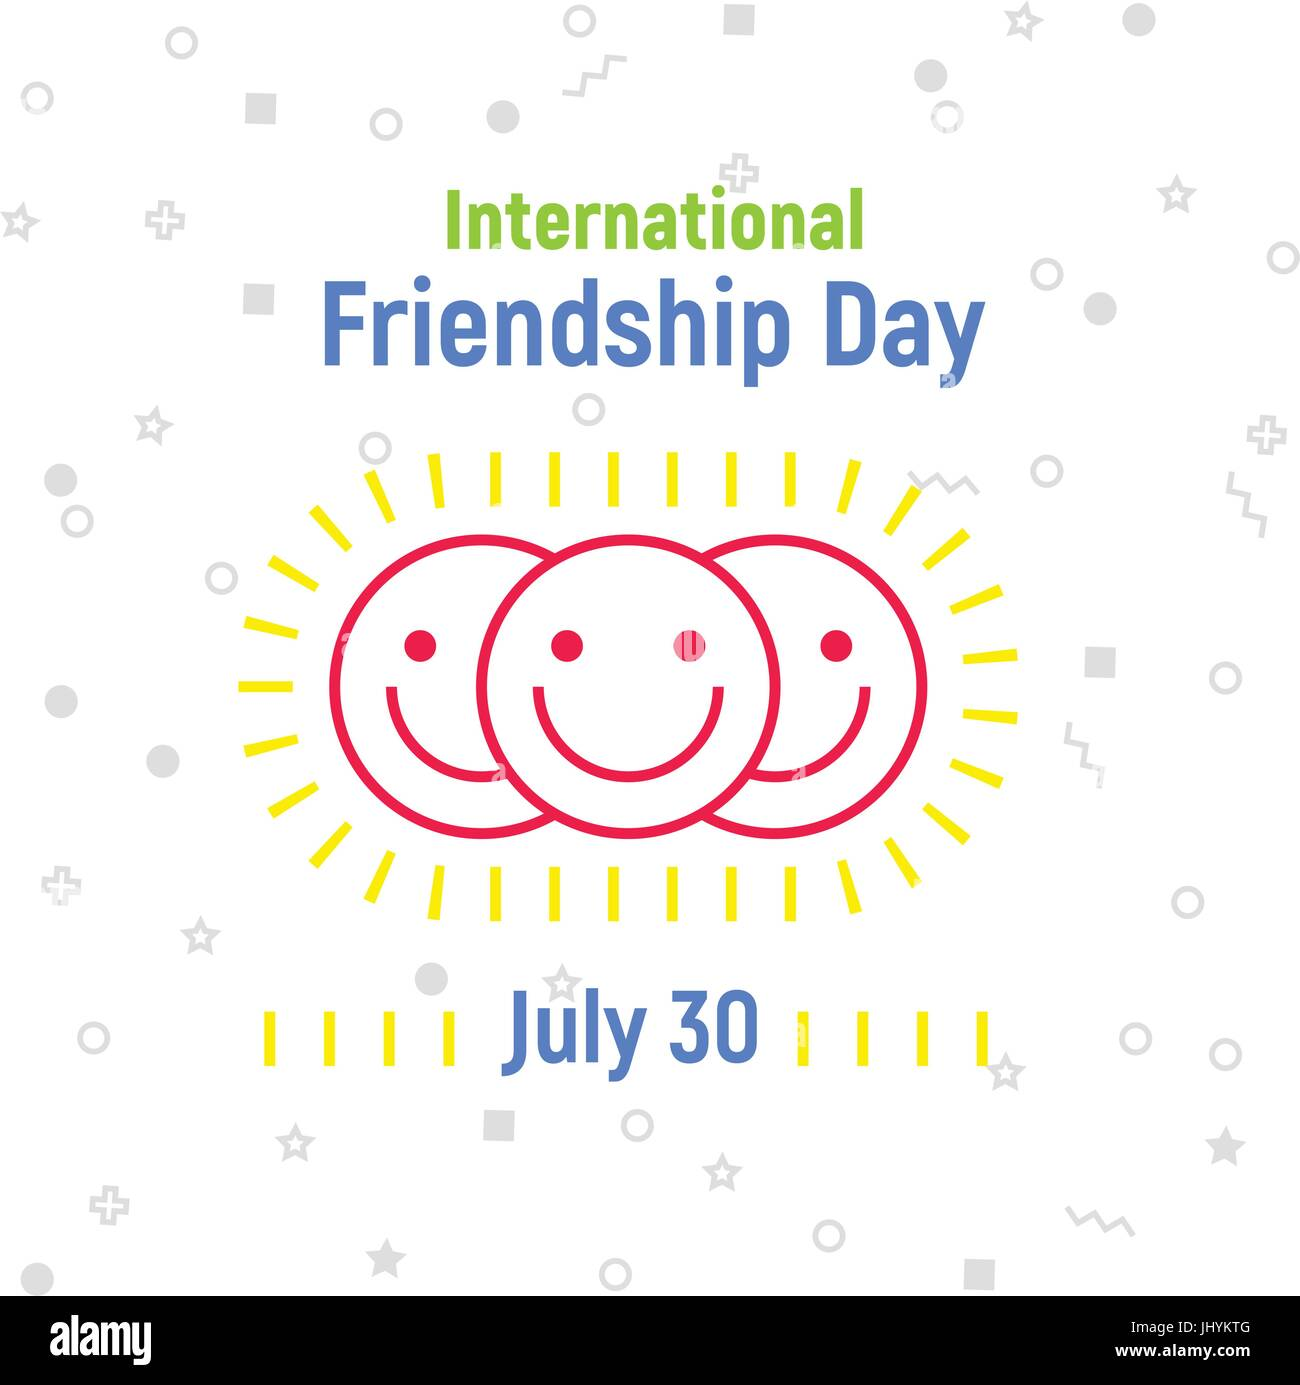 What can please another international holiday - Friendship Day